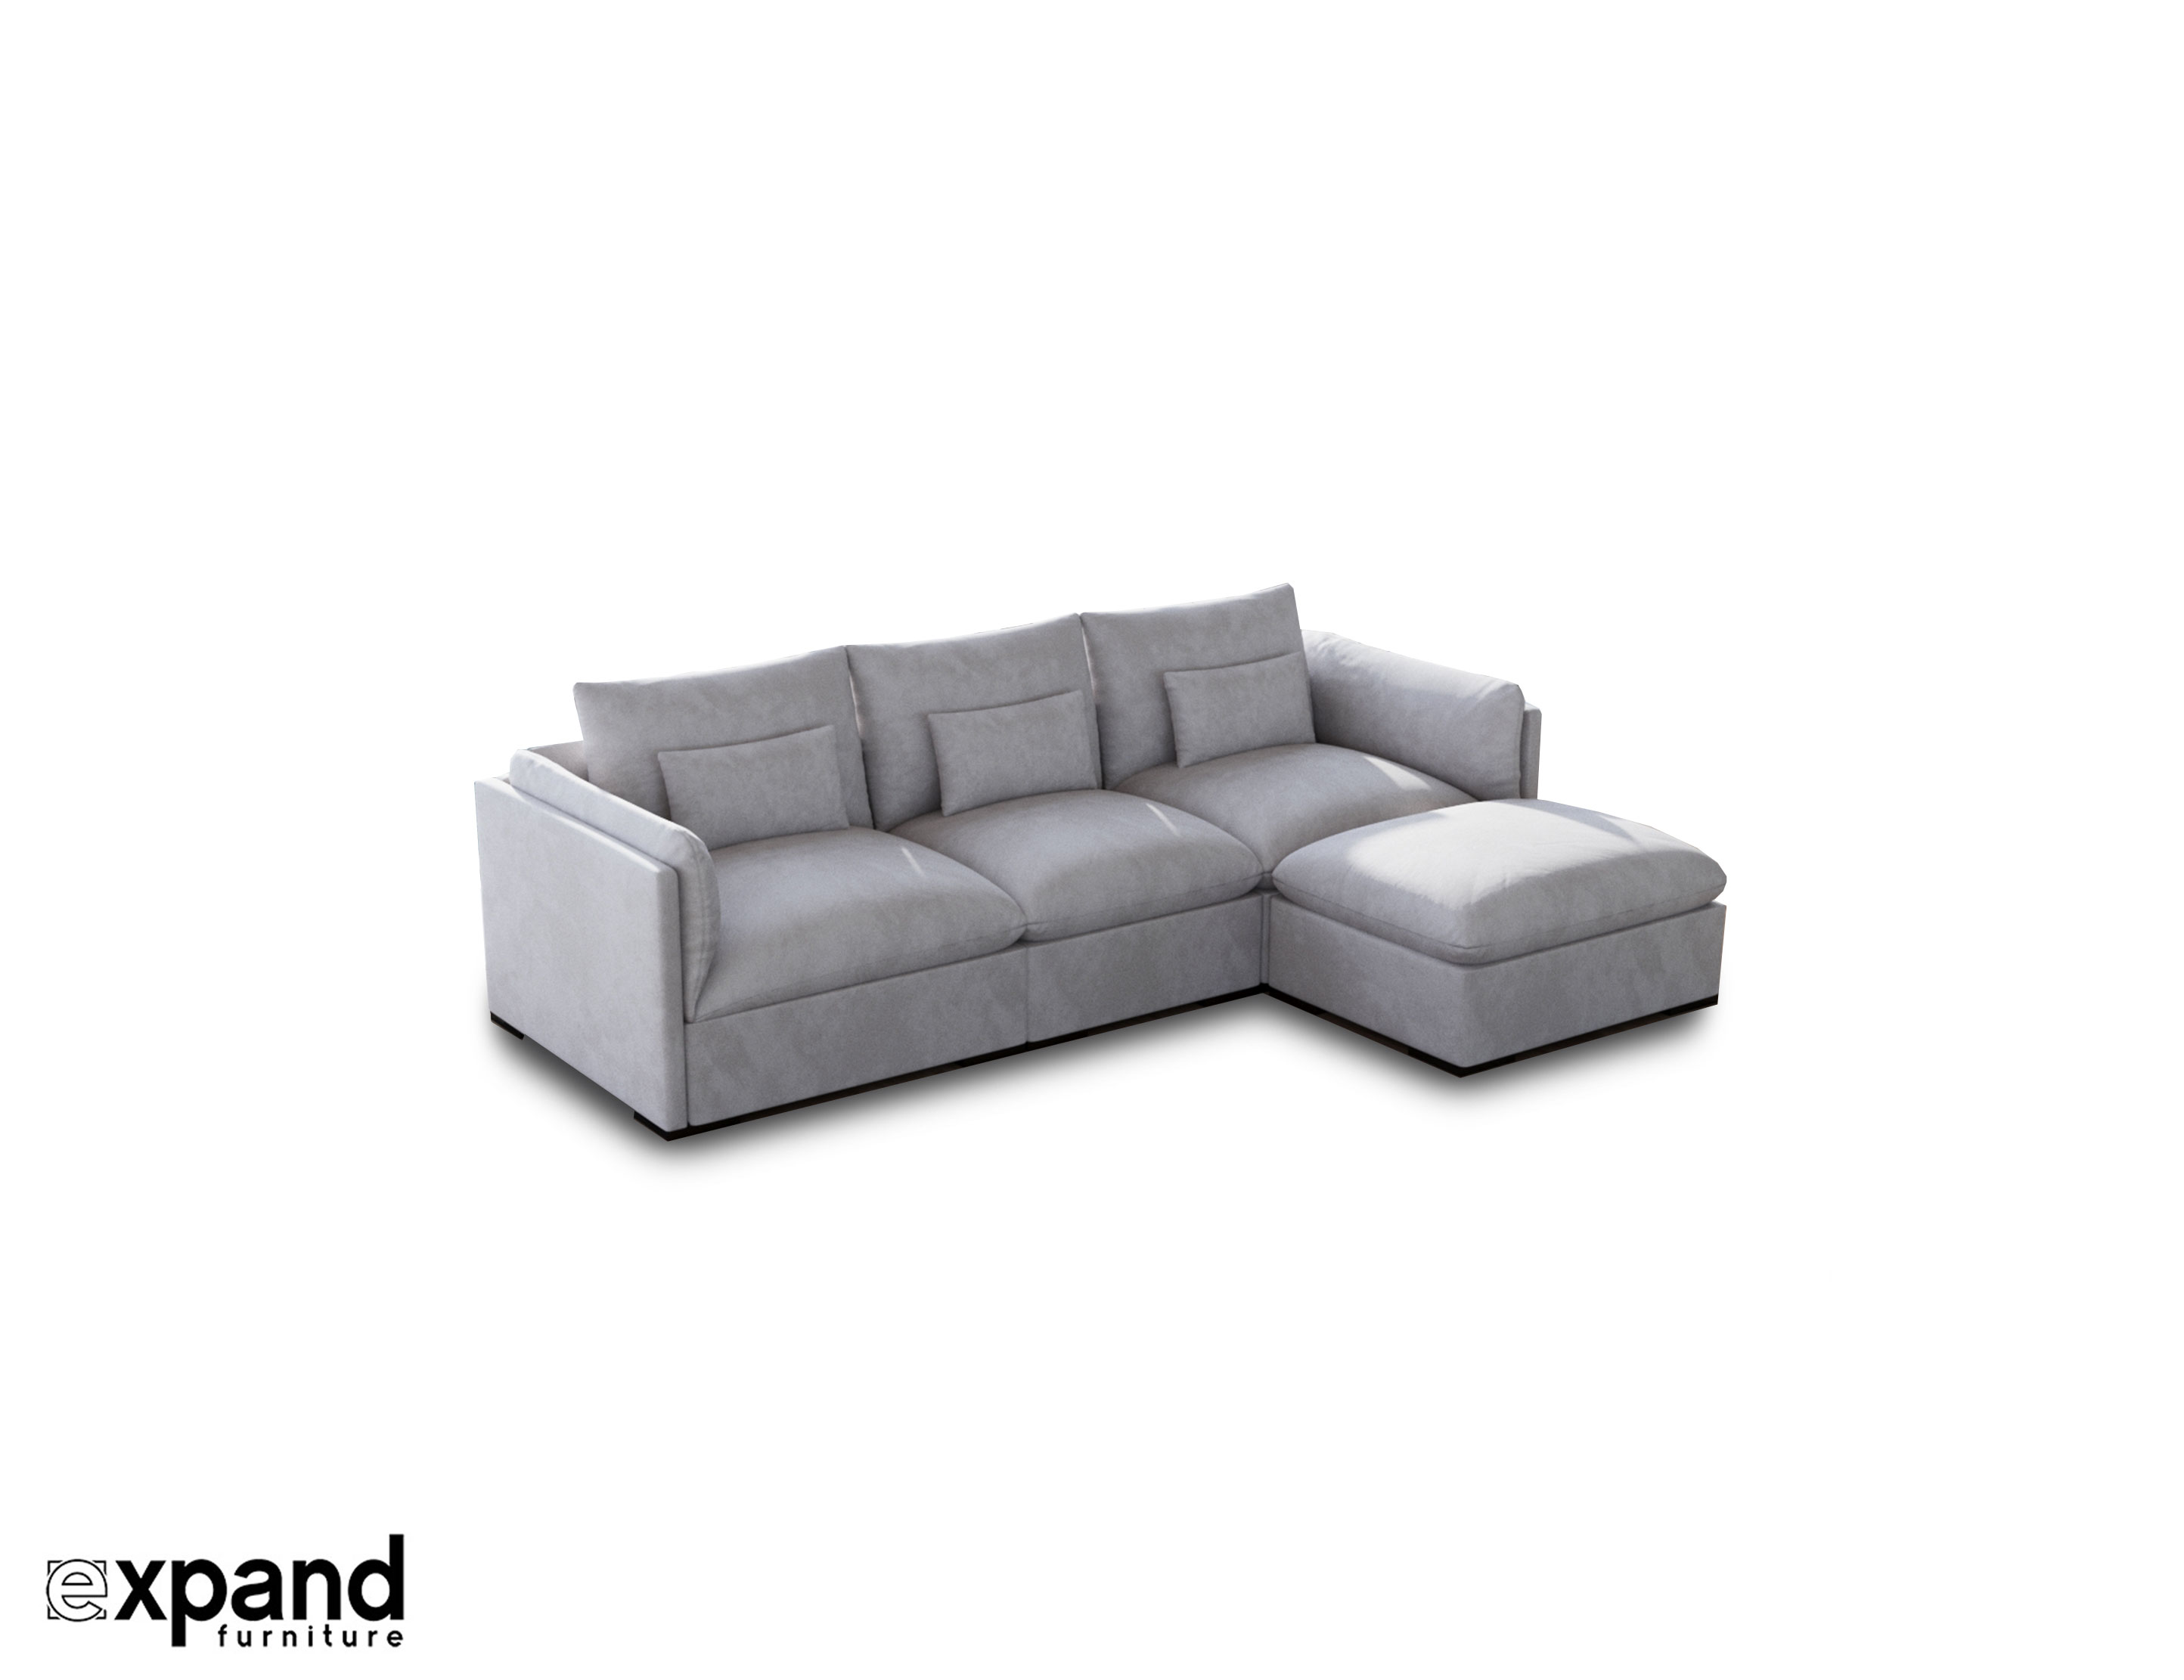 Sofa Module Adagio Luxury Sectional Modular Sofa Set Of 4